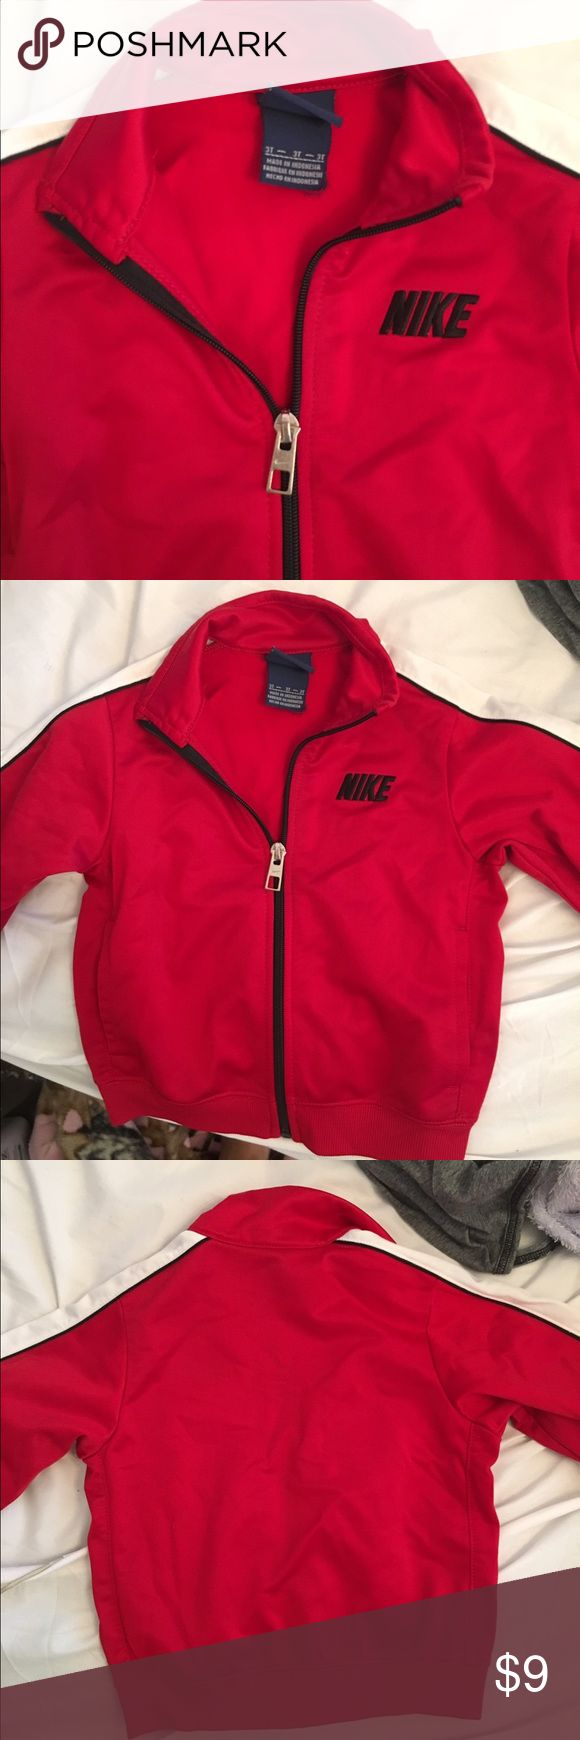 red Nike jacket  In good condition Nike Jackets & Coats